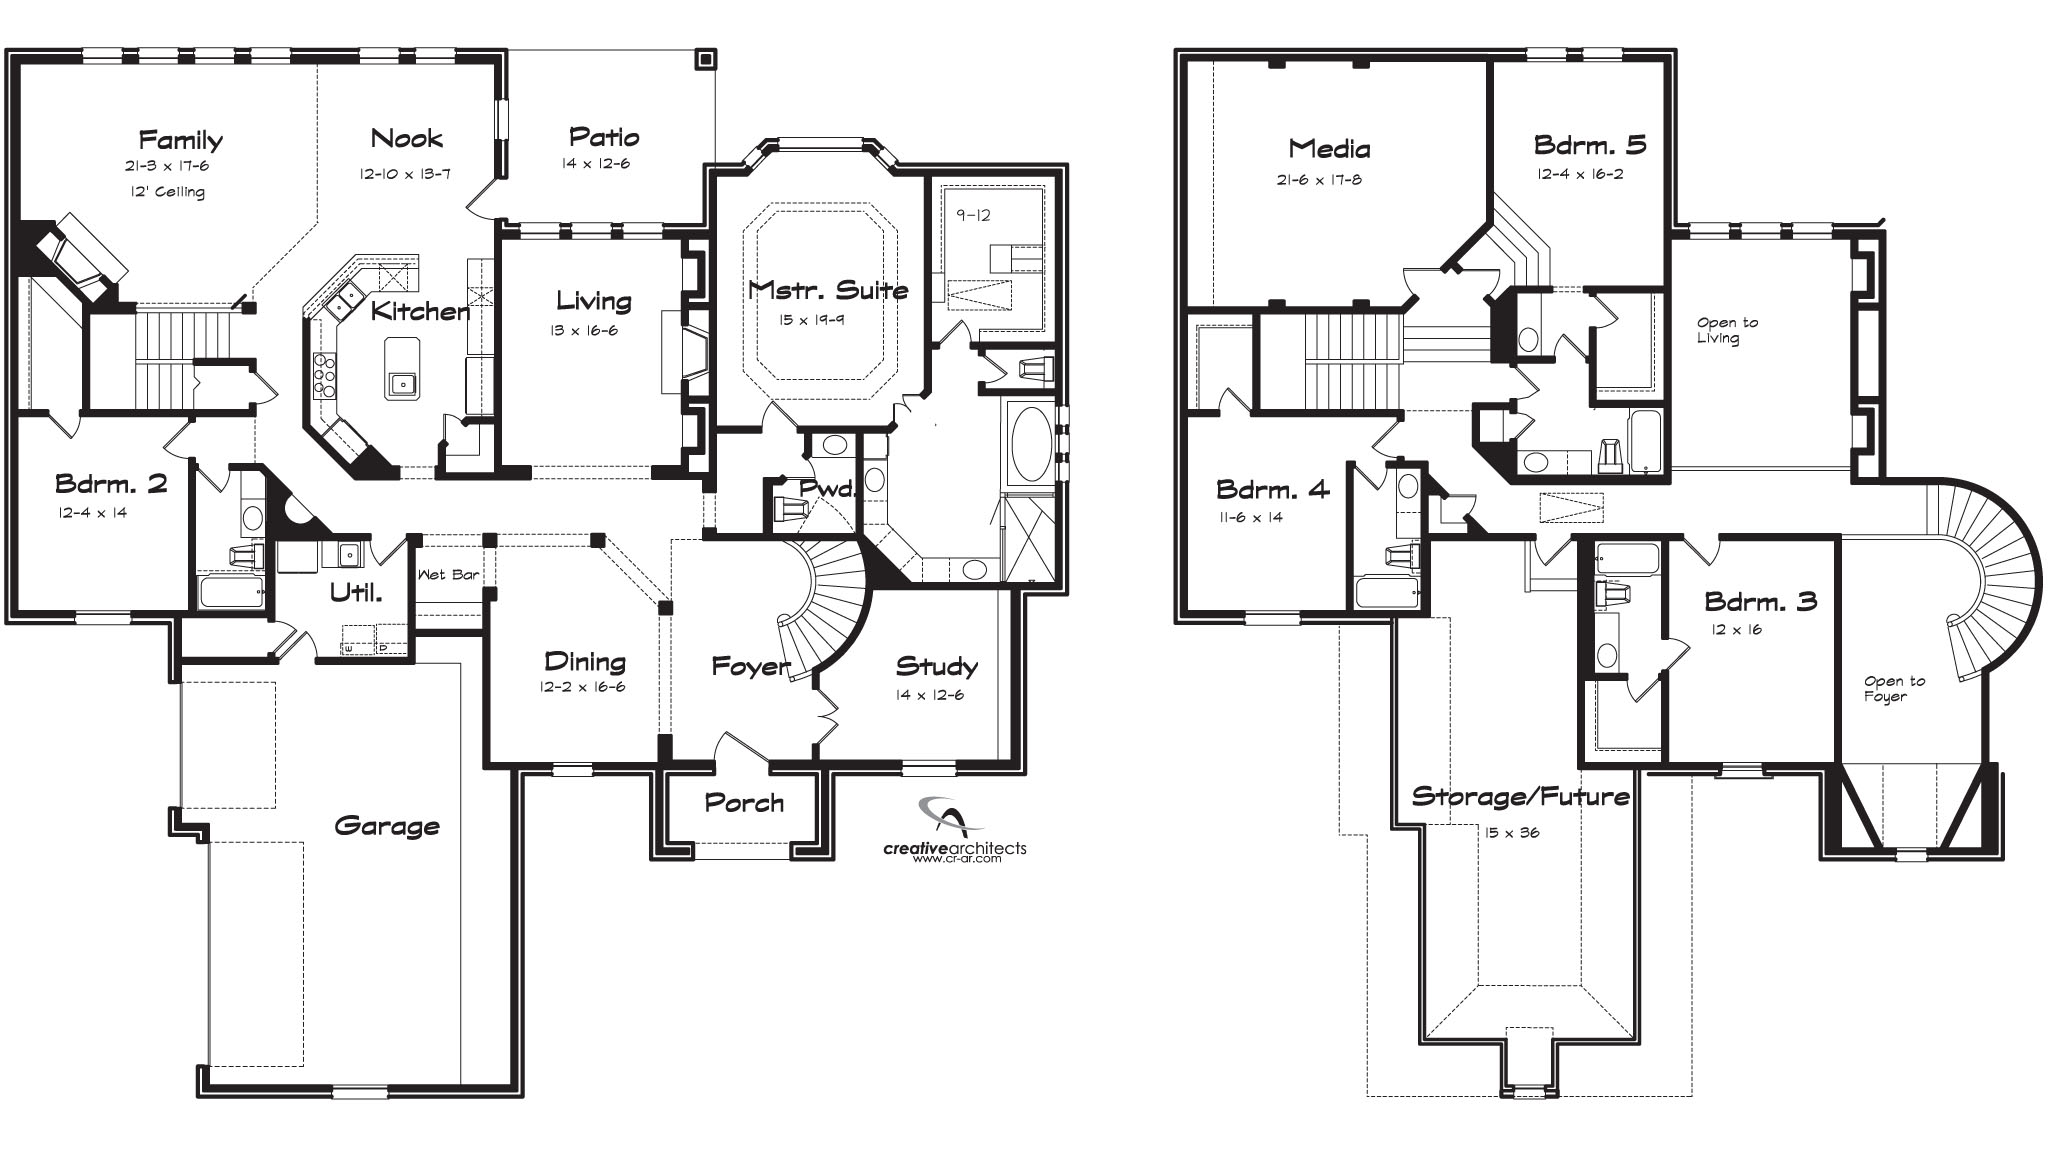 5 bedroom house plans design interior - Best bedroom plan ...